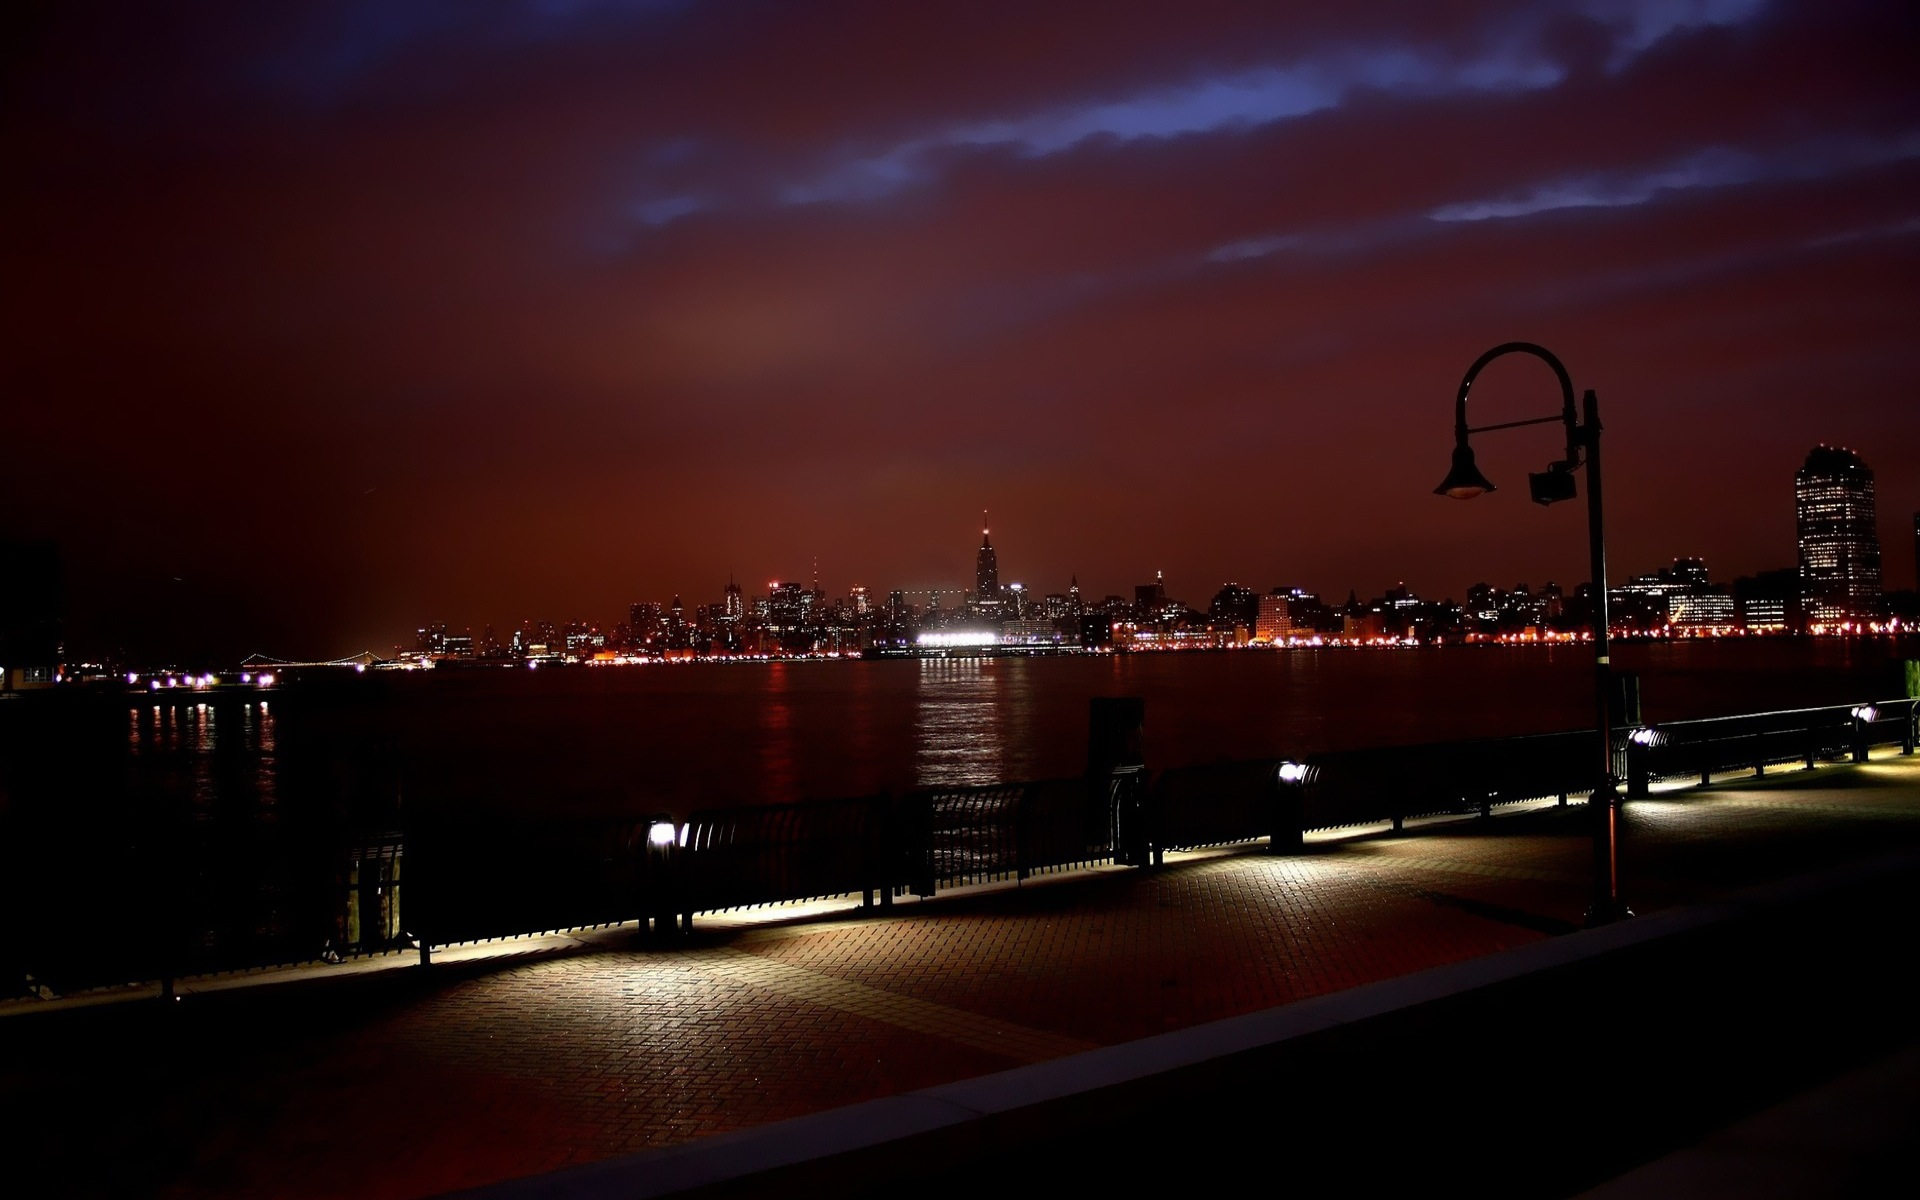 New York Skyline at Night 1673.84 Kb